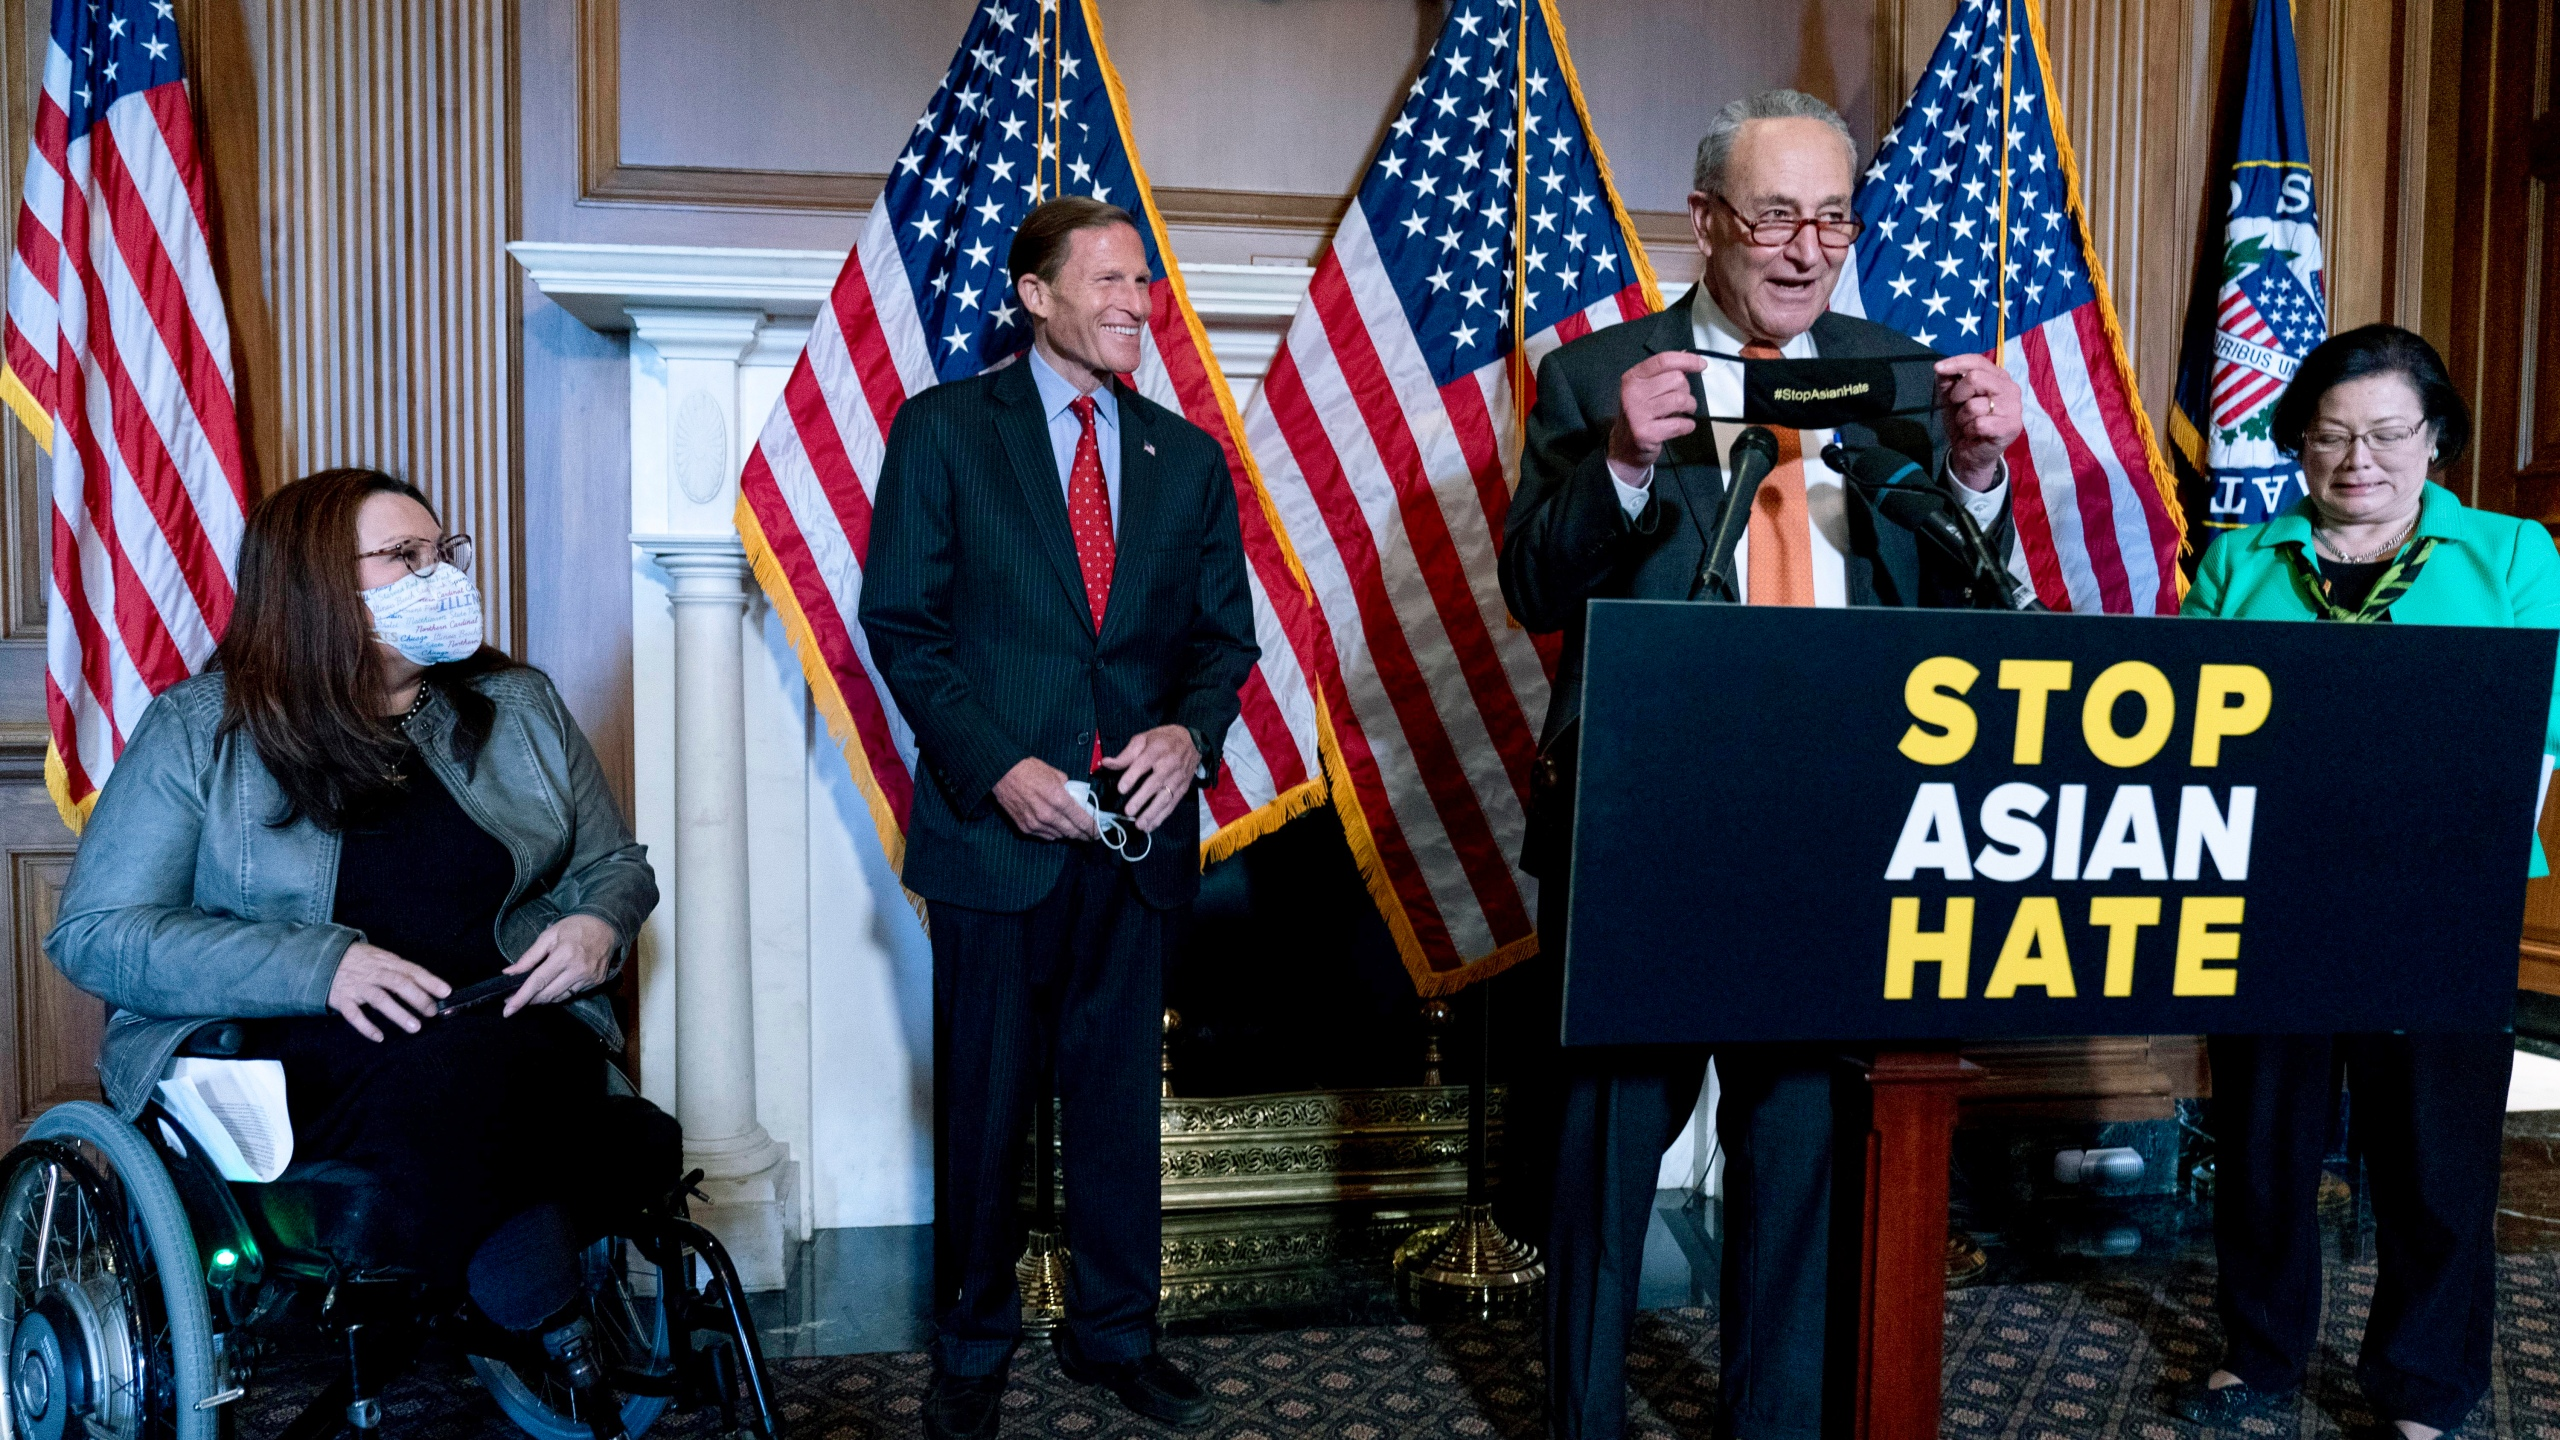 Chuck Schumer, Mazie Hirono, Tammy Duckworth, Richard Blumenthal